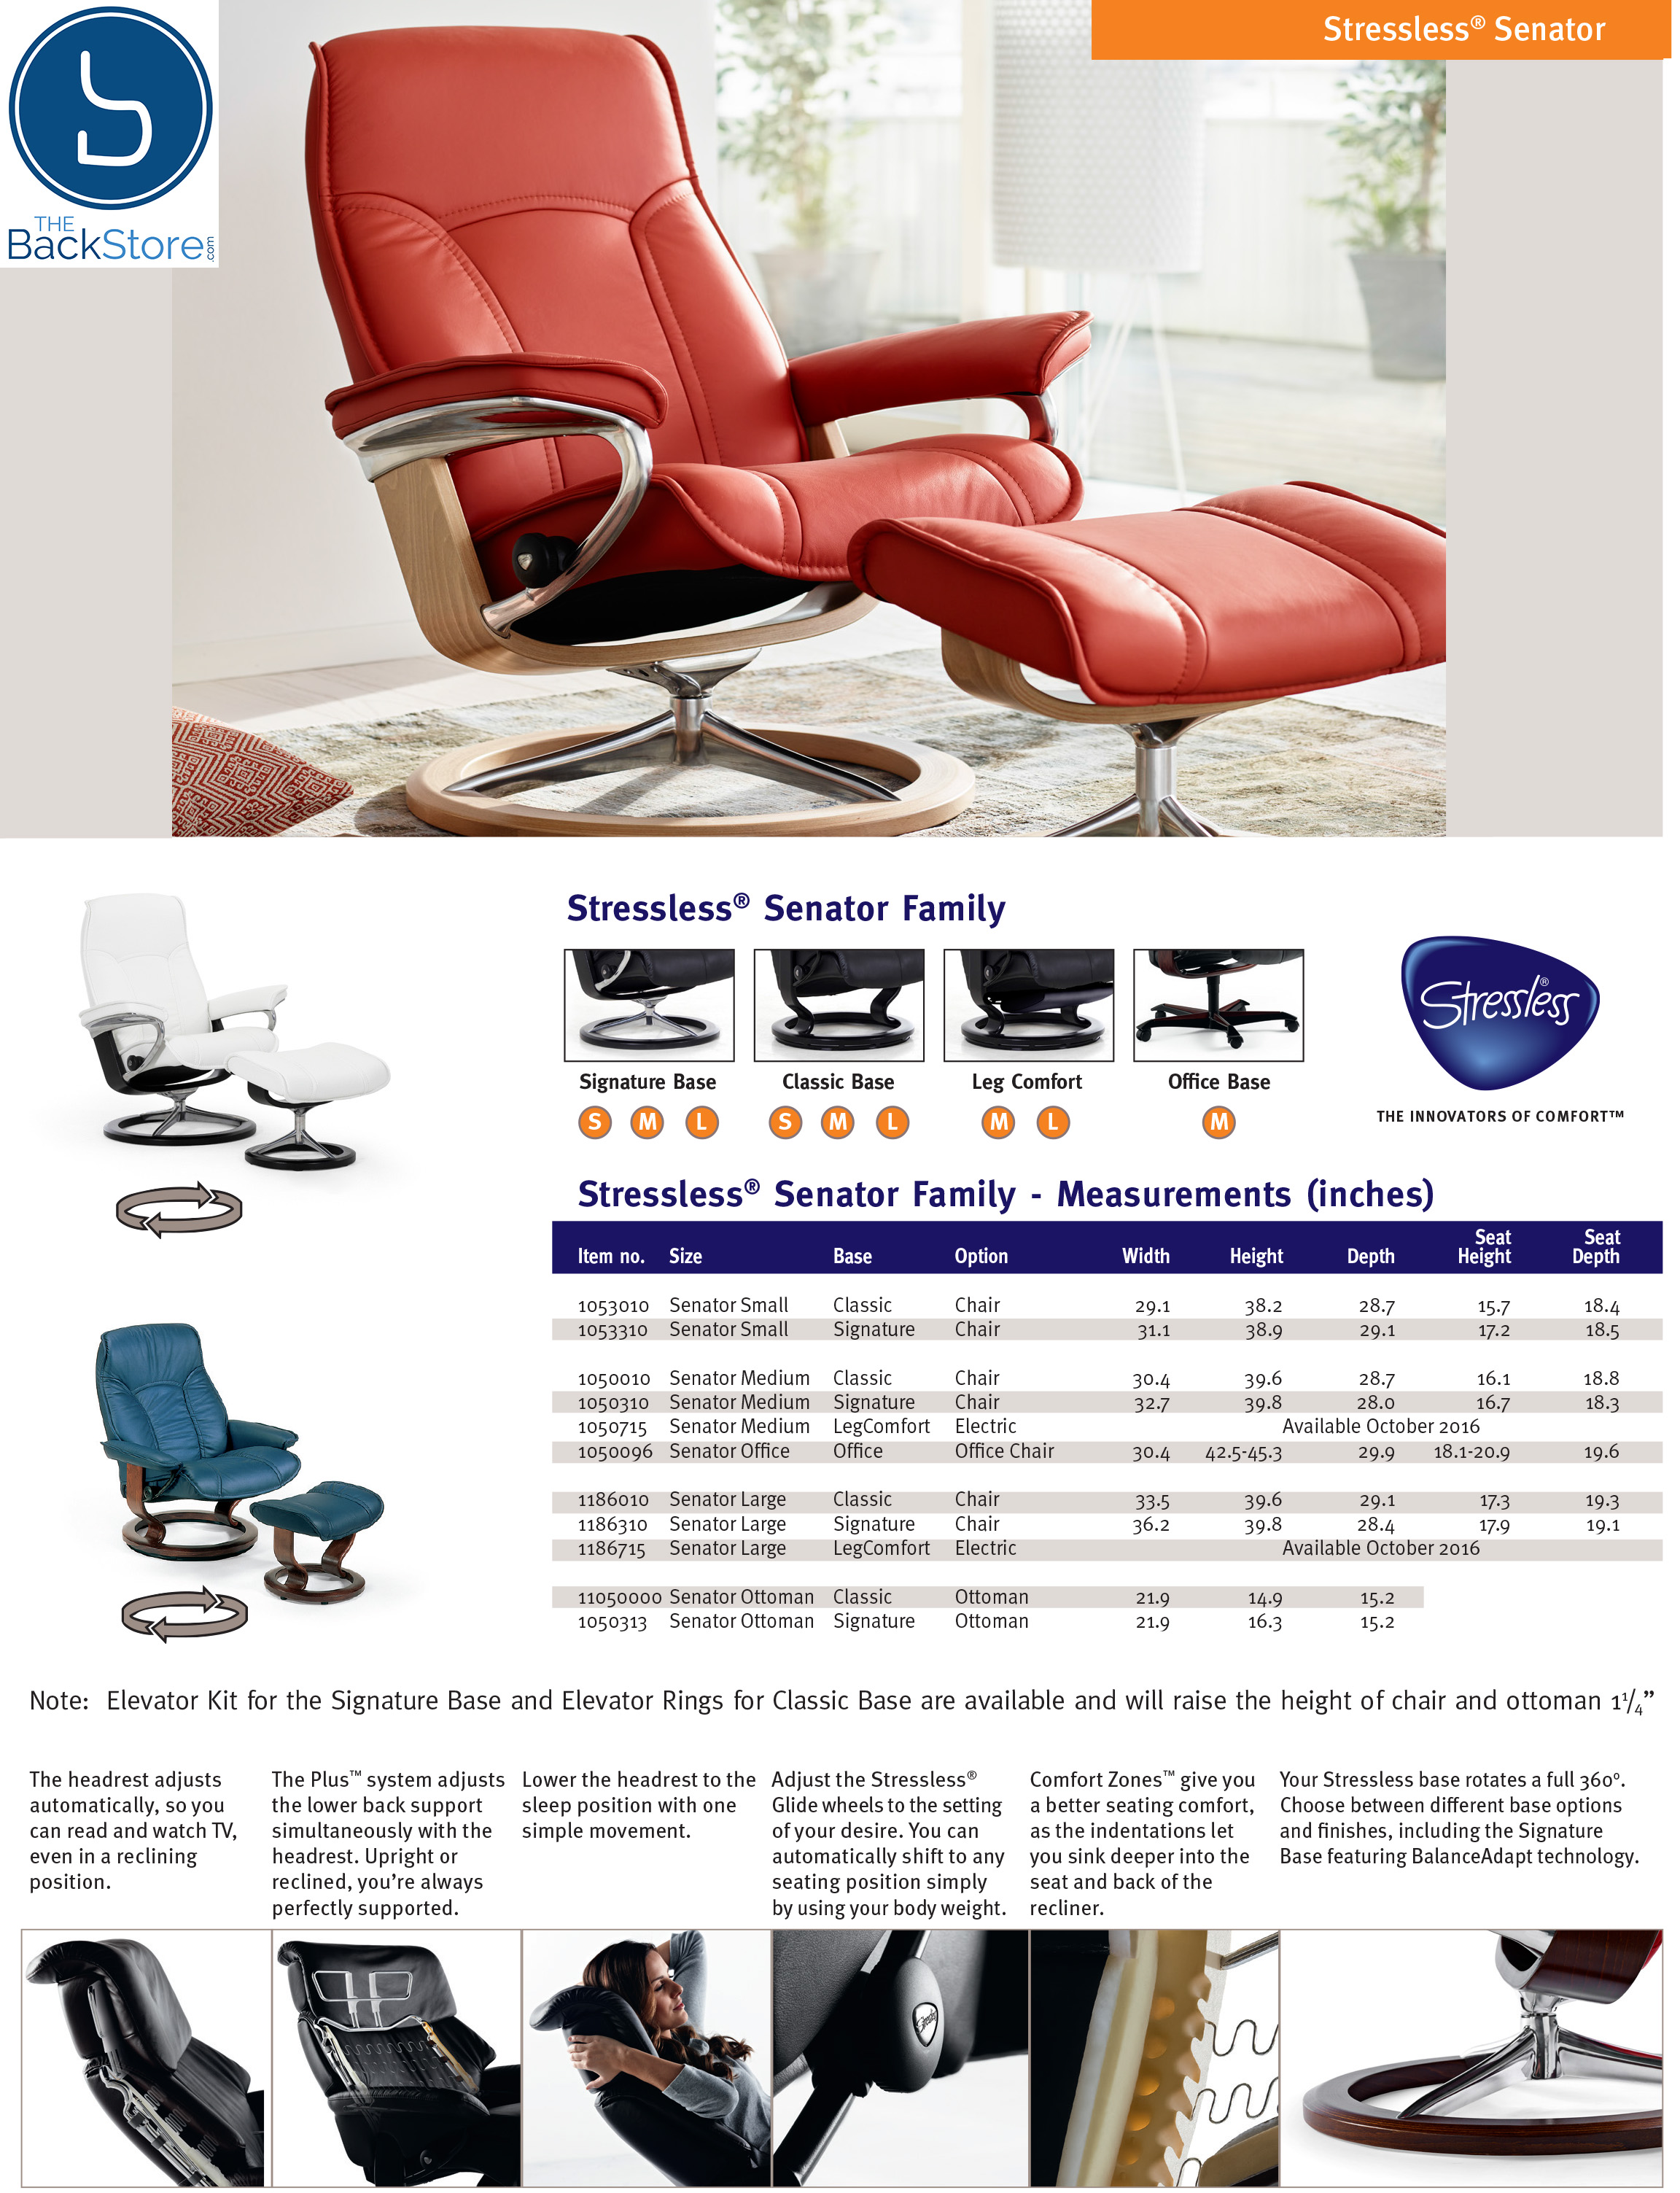 Brilliant Stressless Governor Paloma Taupe Leather Recliner Chair And Ottoman By Ekornes Gmtry Best Dining Table And Chair Ideas Images Gmtryco